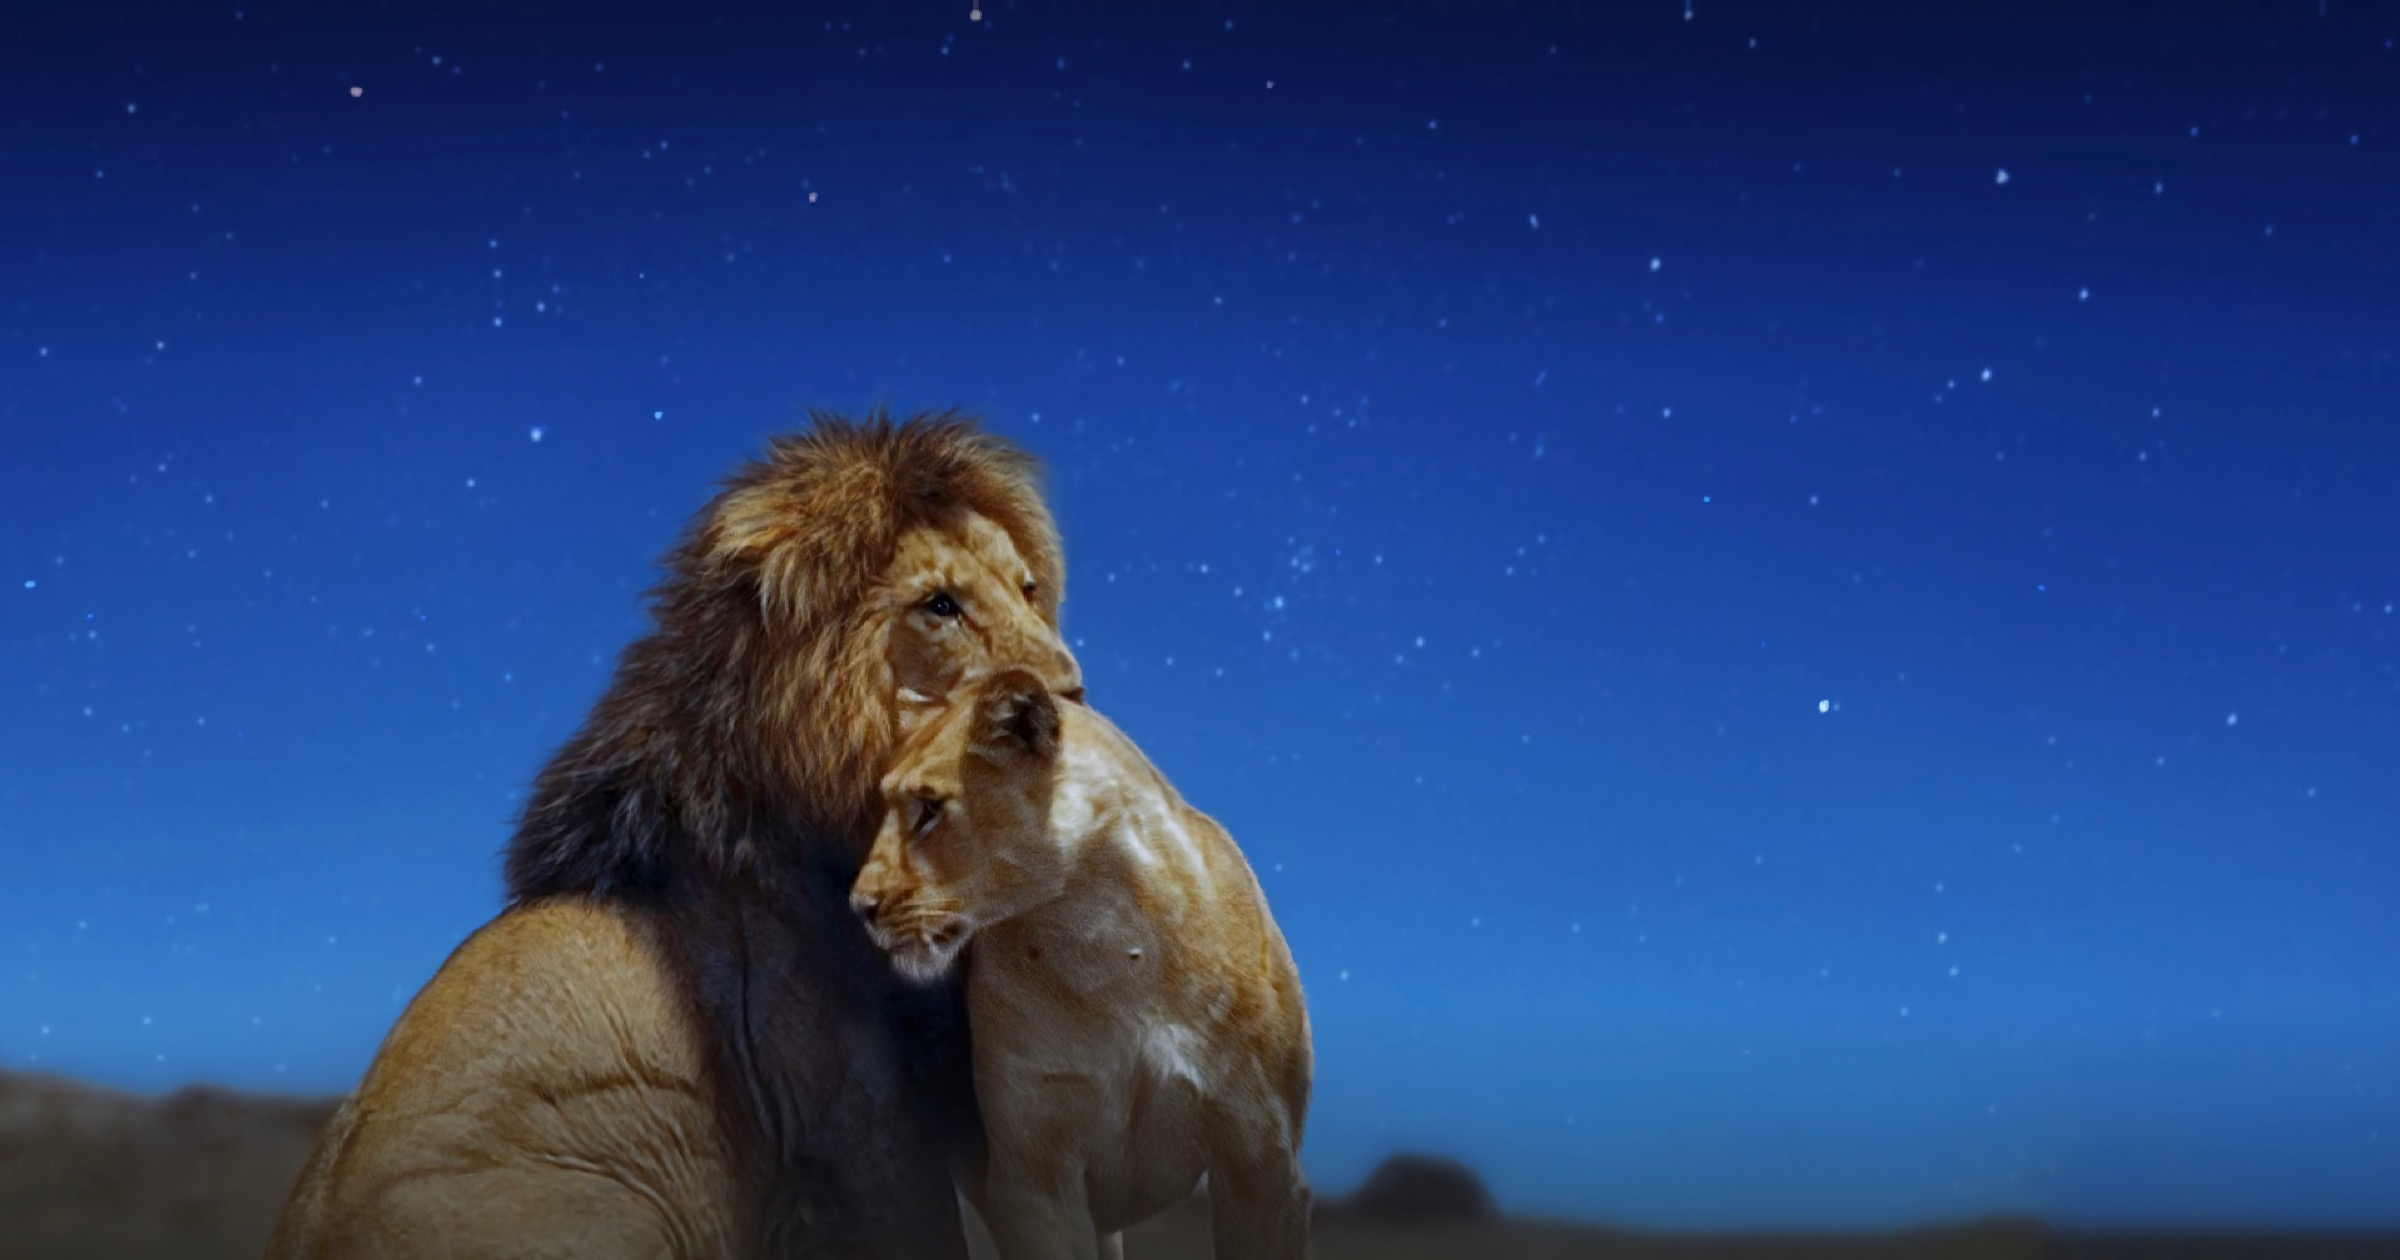 Two lions in earth at night in color